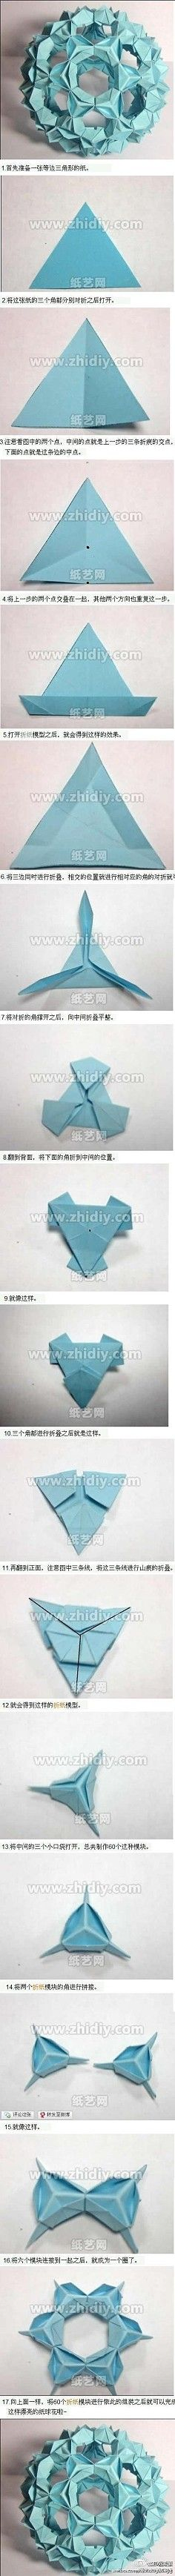 Blue Star paper origami flower ball tutorial                                                                                                                                                                                 More